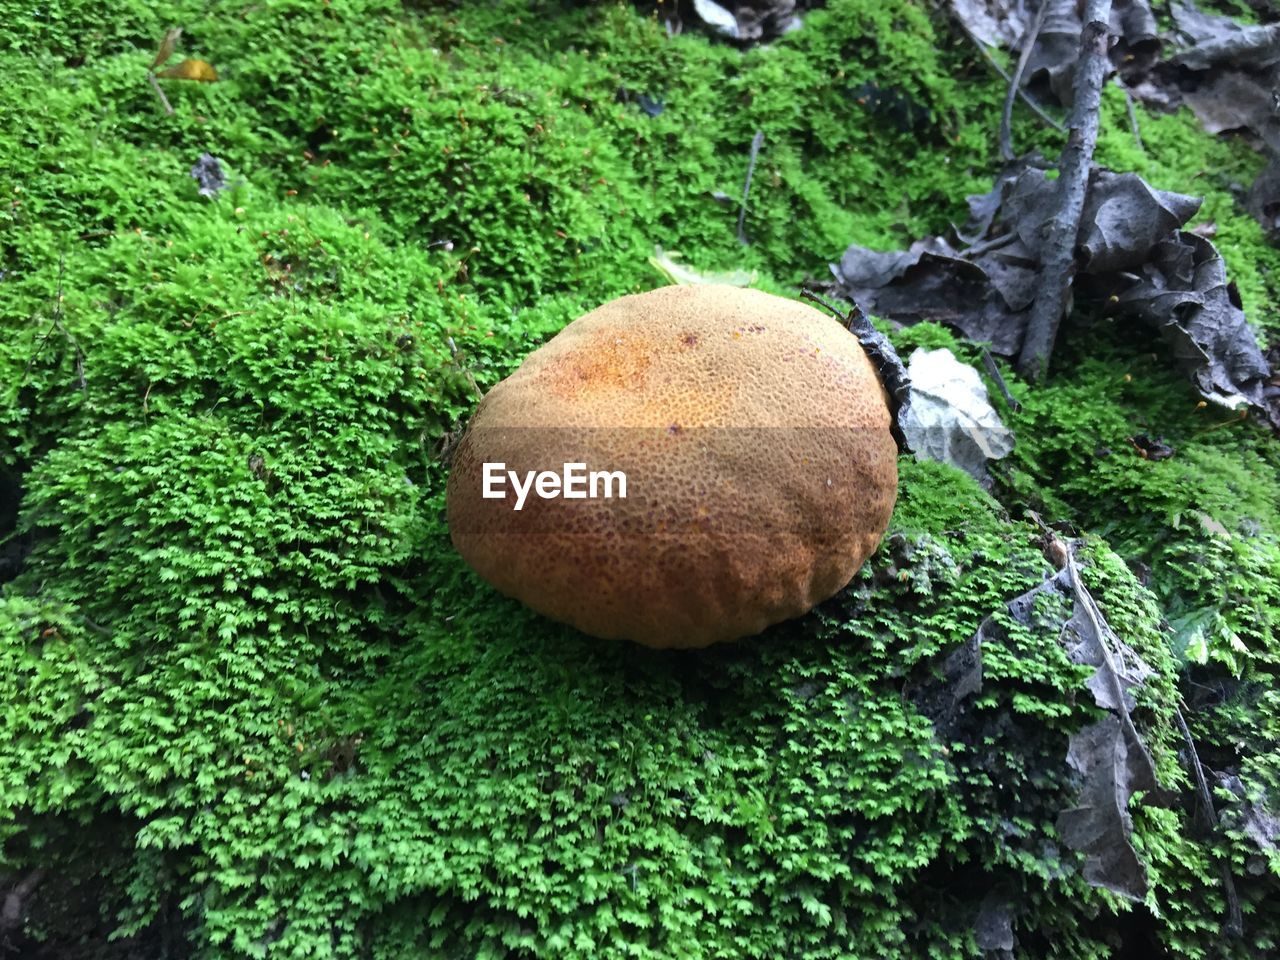 green color, growth, plant, no people, food, food and drink, mushroom, nature, freshness, day, fungus, moss, close-up, vegetable, tree, high angle view, land, healthy eating, outdoors, beauty in nature, toadstool